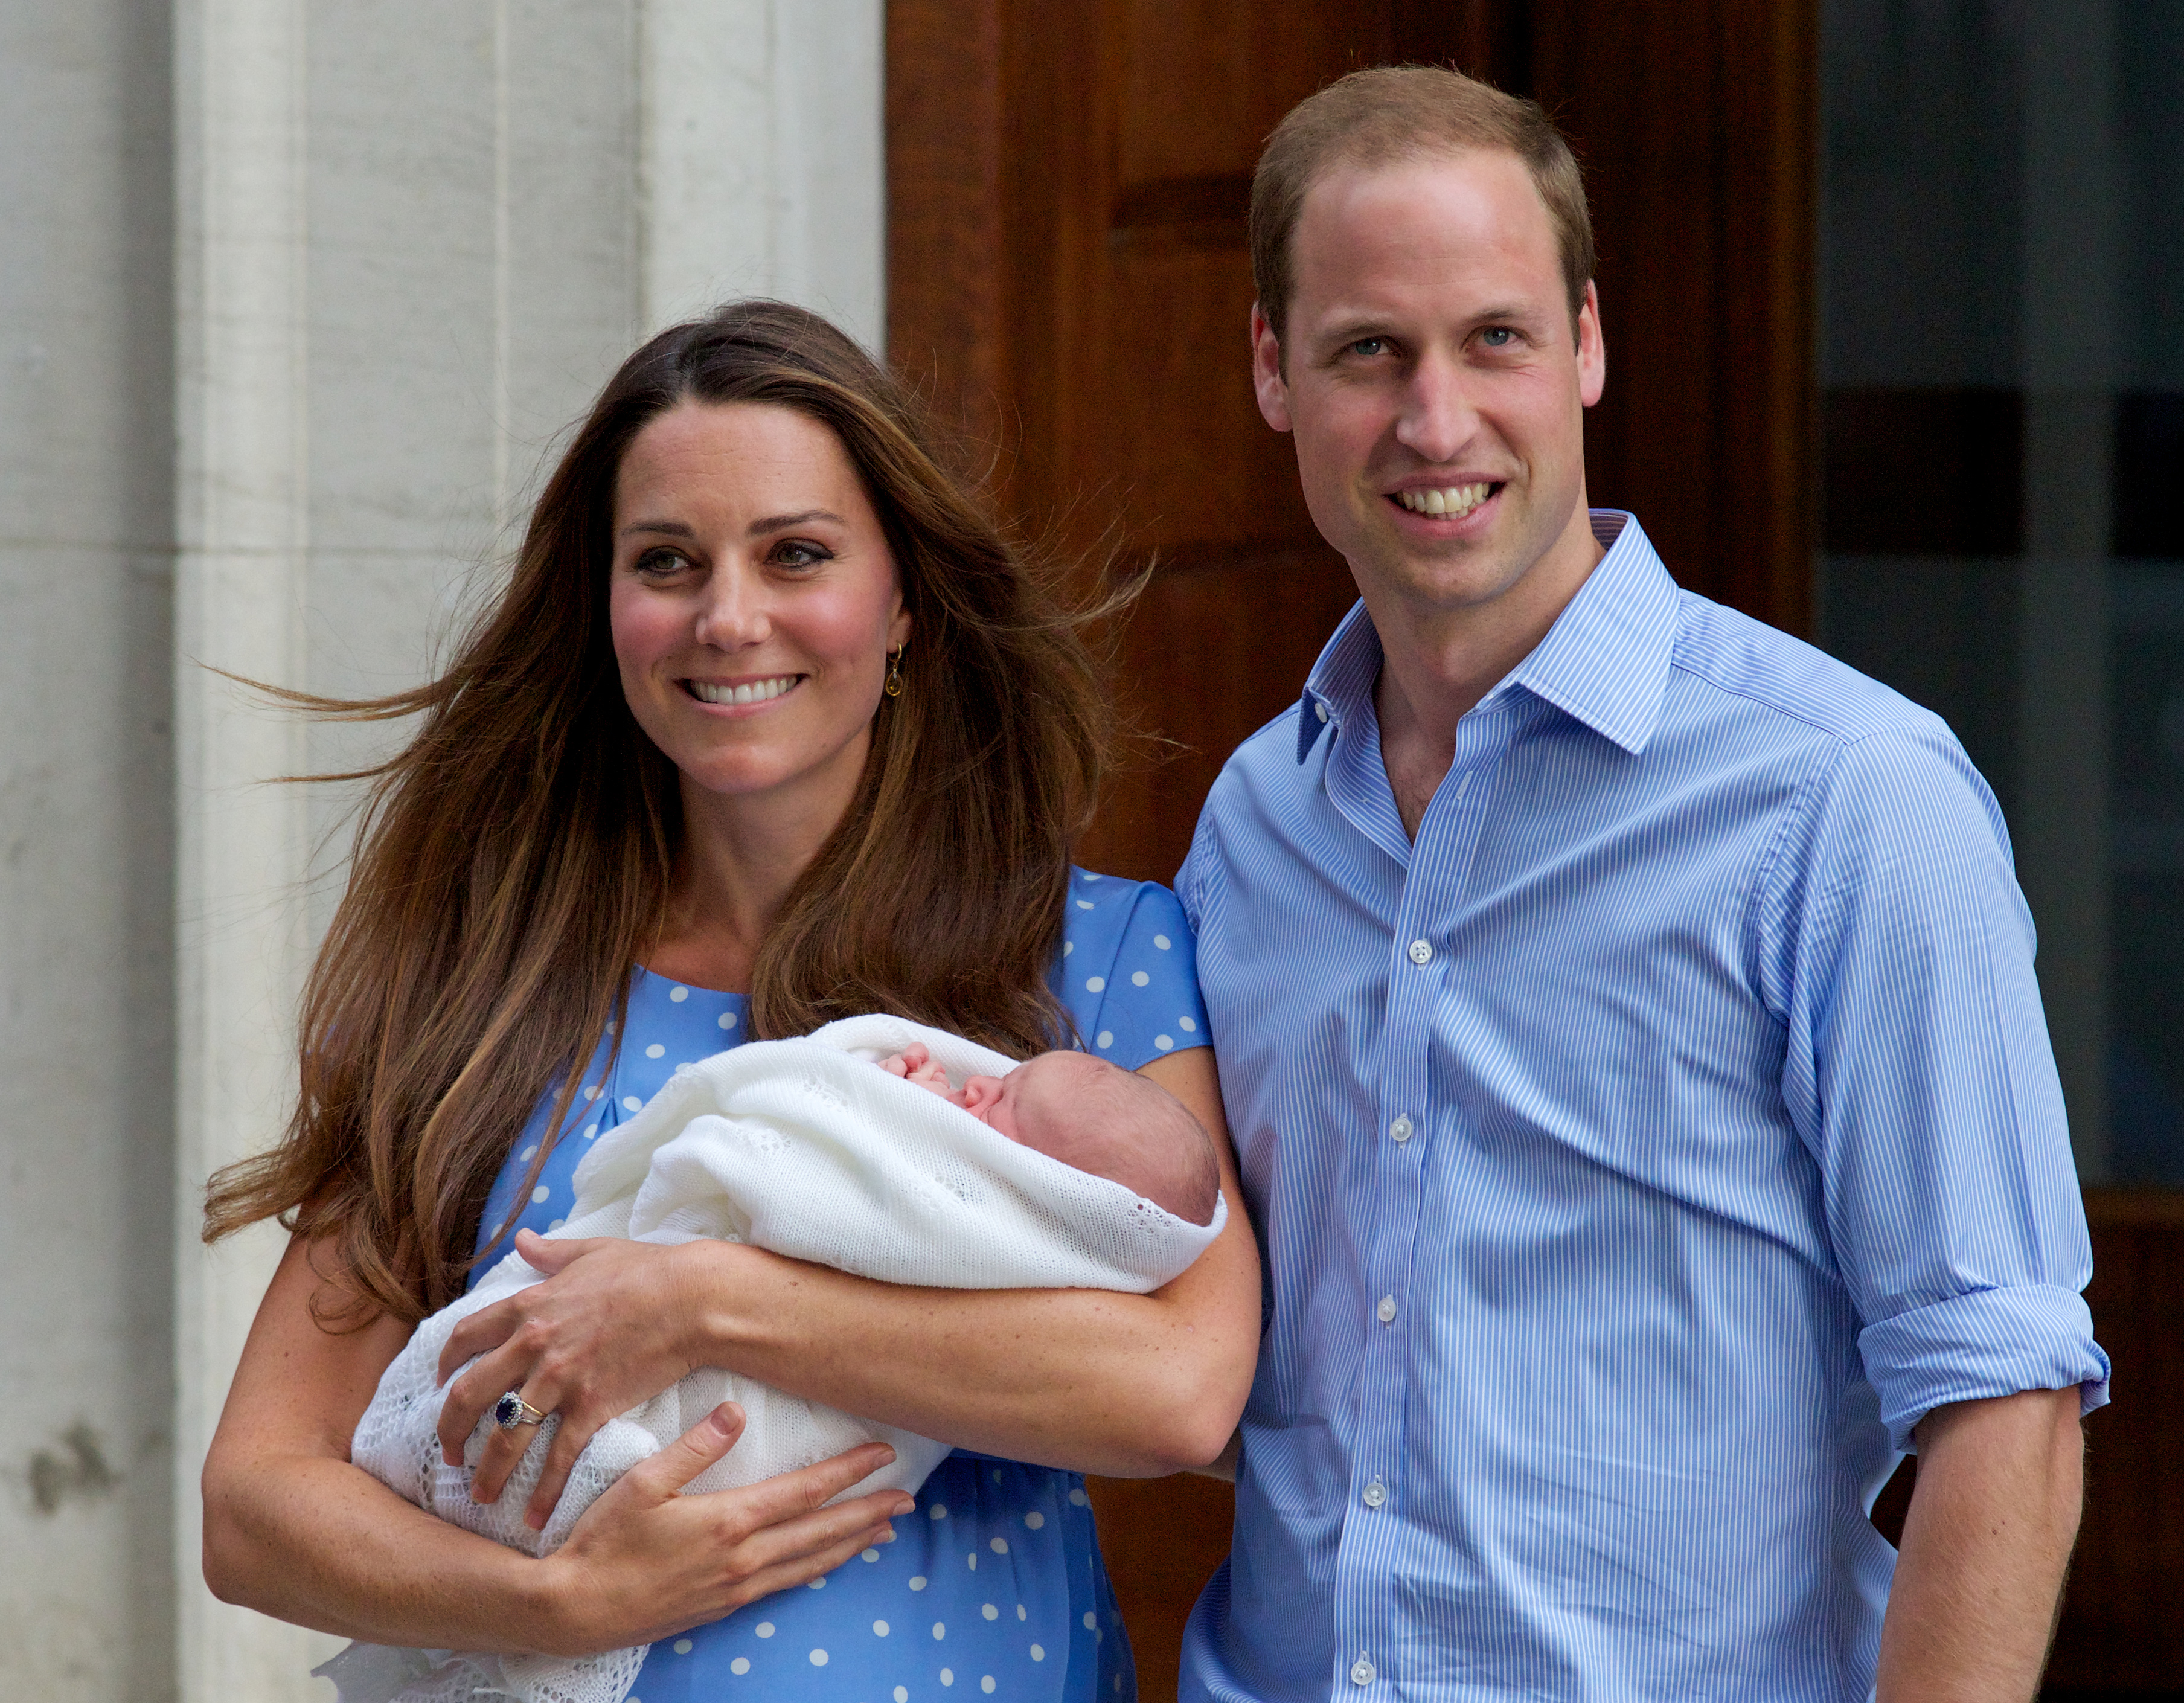 Kate Middleton shares details of the mishap she suffered after Prince George's birth